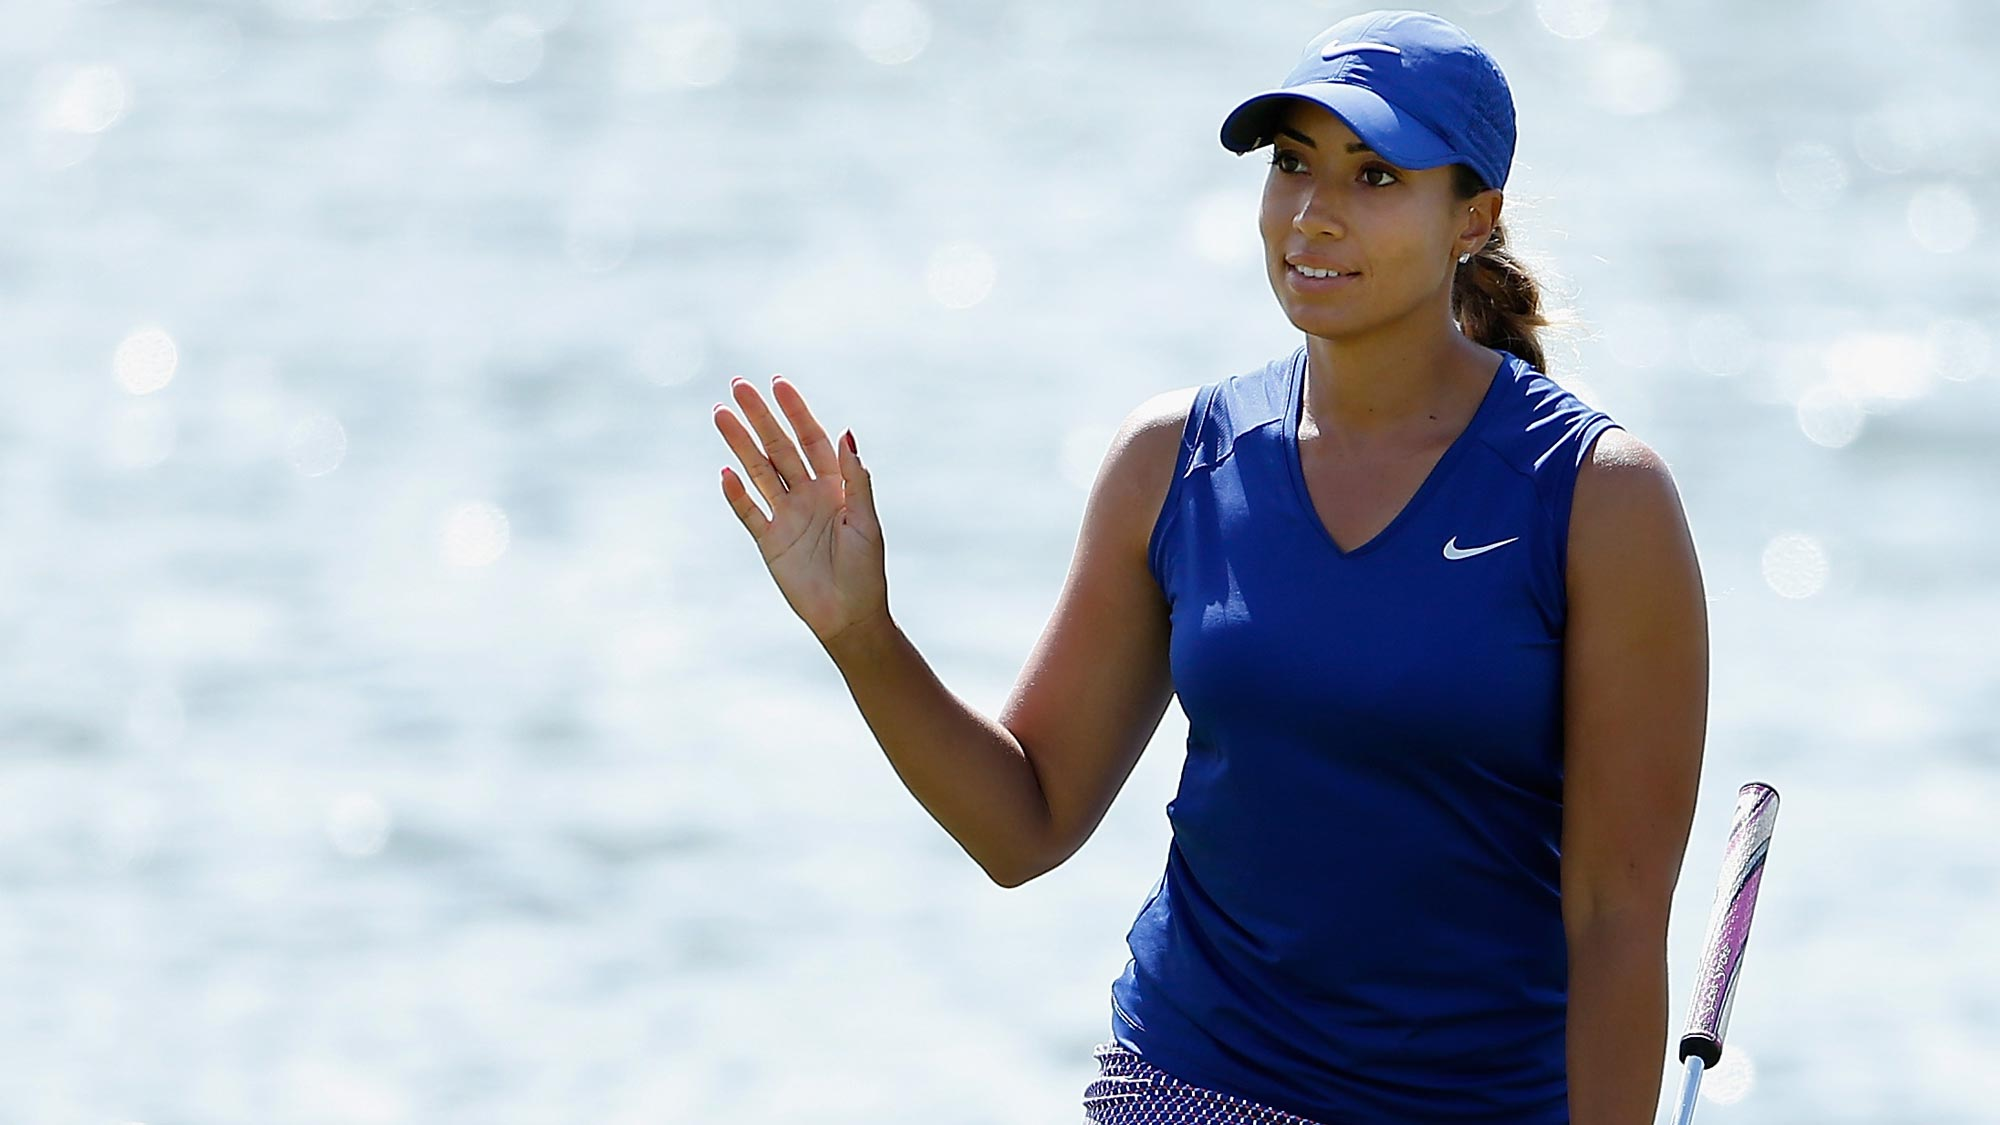 Cheyenne Woods reacts after a par putt on the 18th green during the first round of the LPGA LOTTE Championship Presented By Hershey